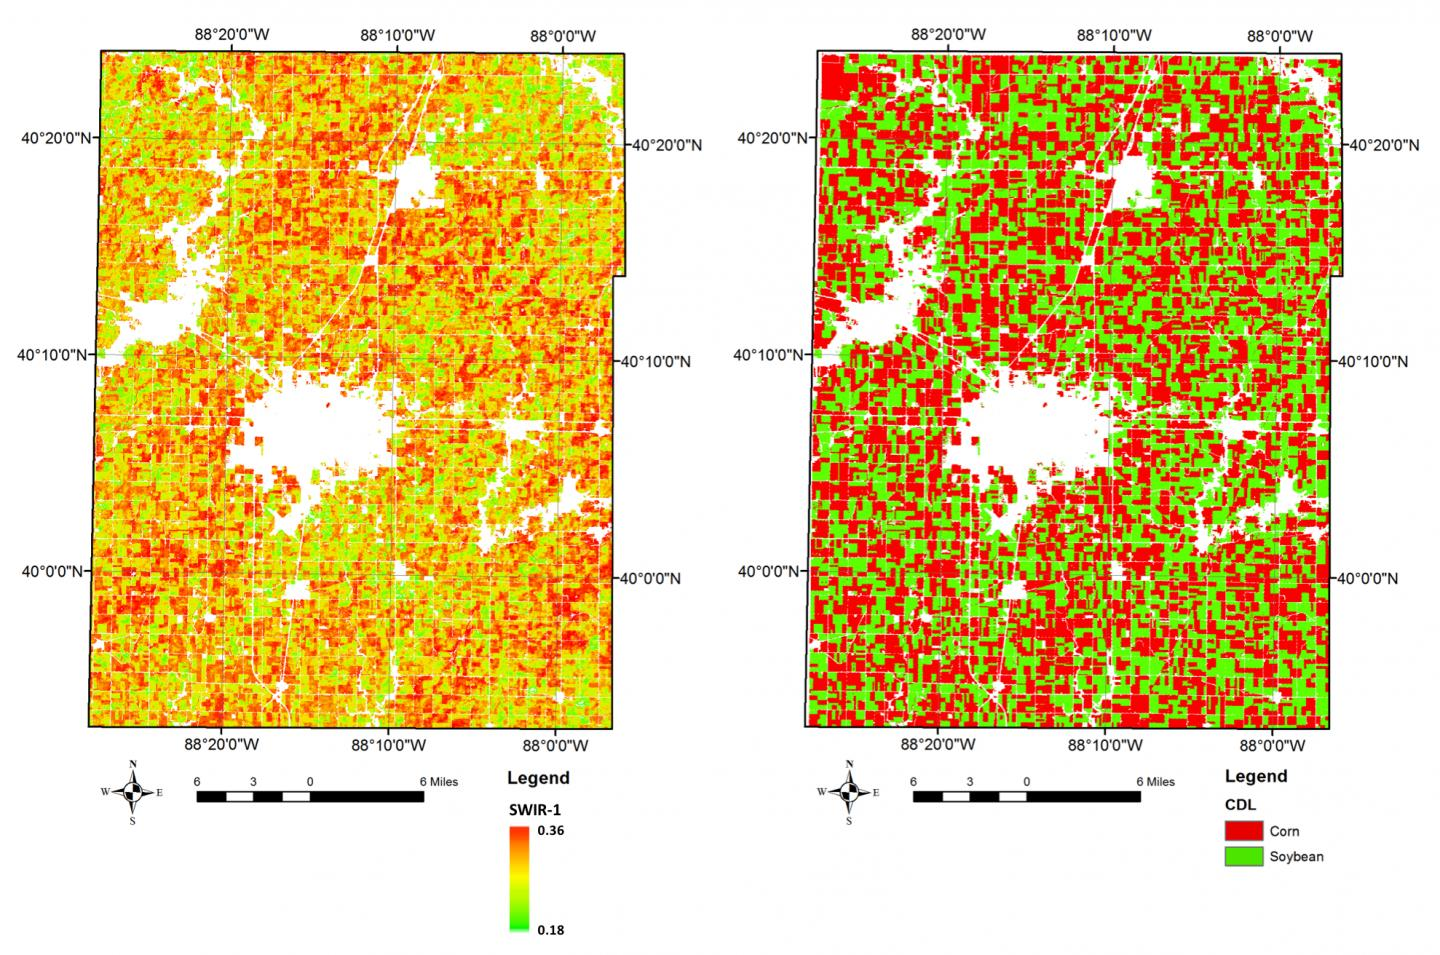 University of Illinois scientists used short-wave infrared bands from Landsat satellites to accurately distinguish corn and soybeans during the growing season. Credit: Kaiyu Guan, University of Illinois